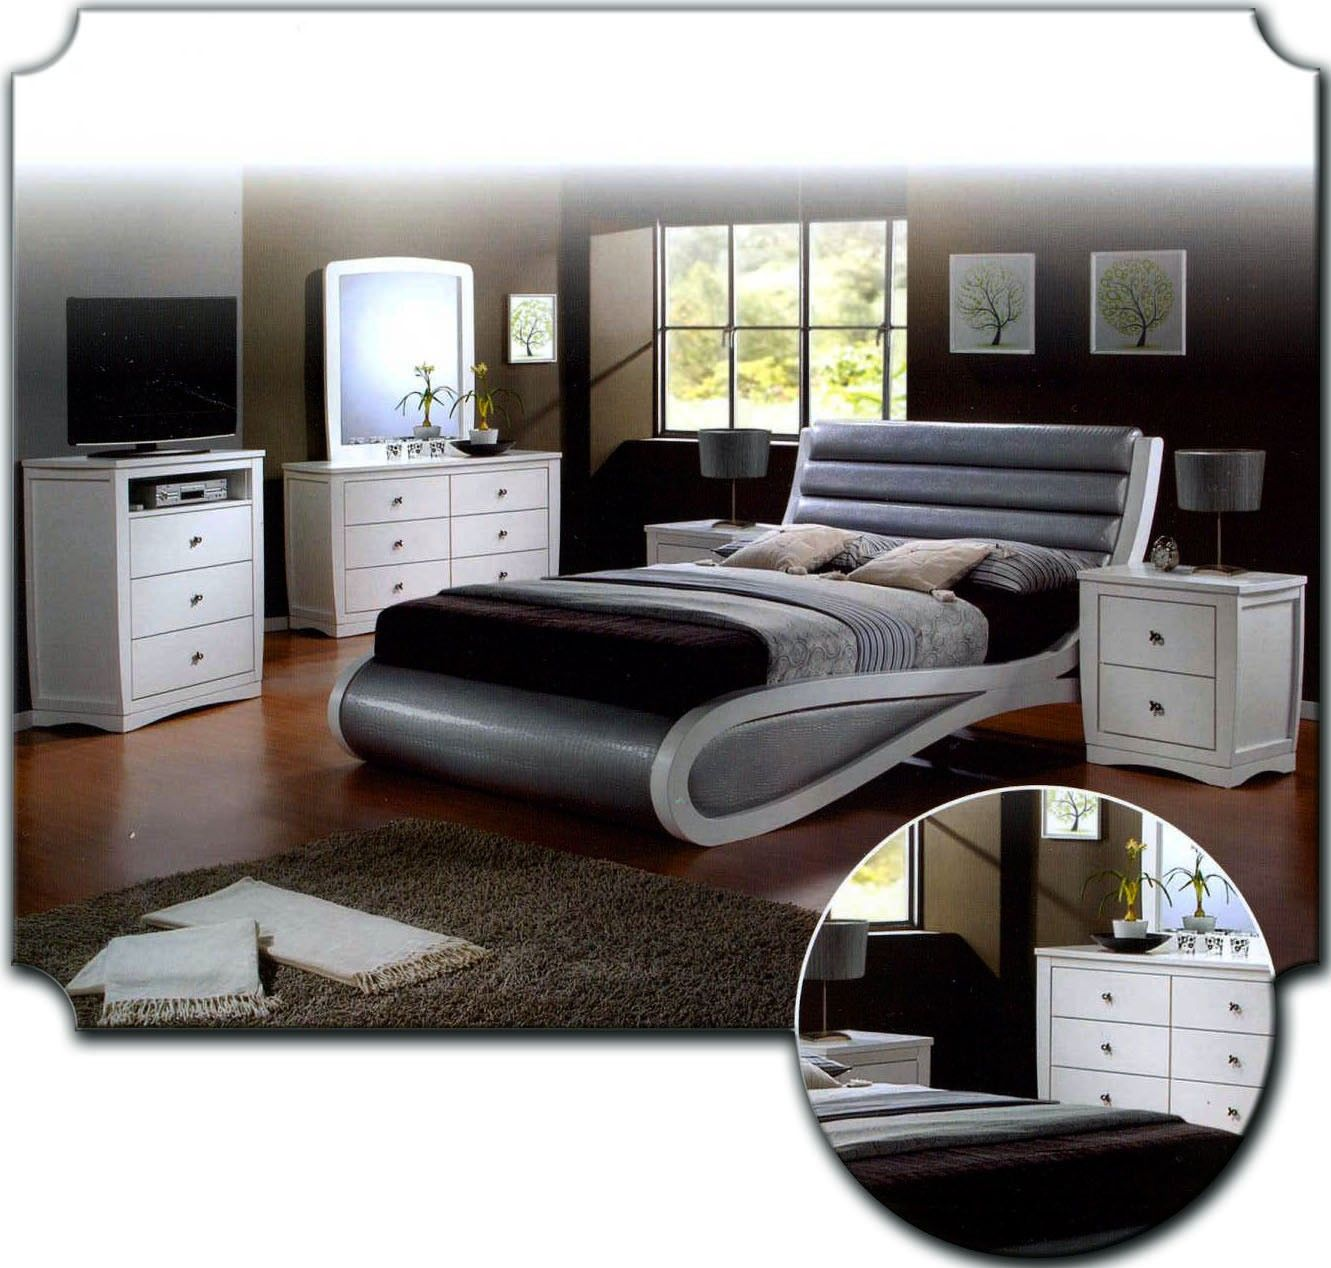 Bedroom Ideas For Teenage Guys Teen Platform Bedroom. Bedroom Ideas For Teenage Guys Teen Platform Bedroom Sets Teenage